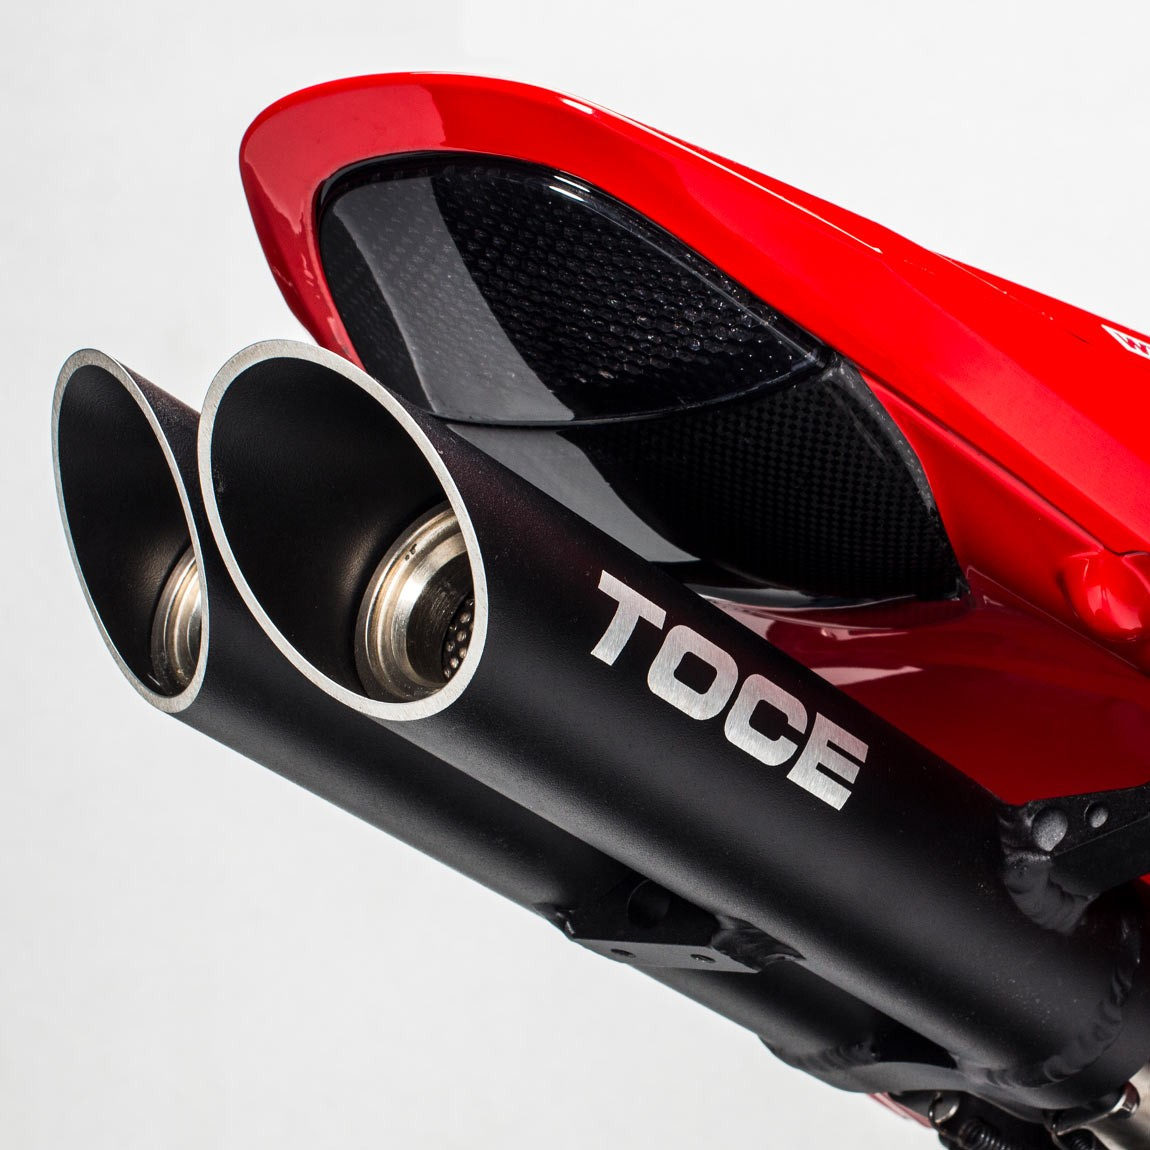 2007 2012 Honda CBR600RR displaying the TST integrated tail light that helped make TST popular